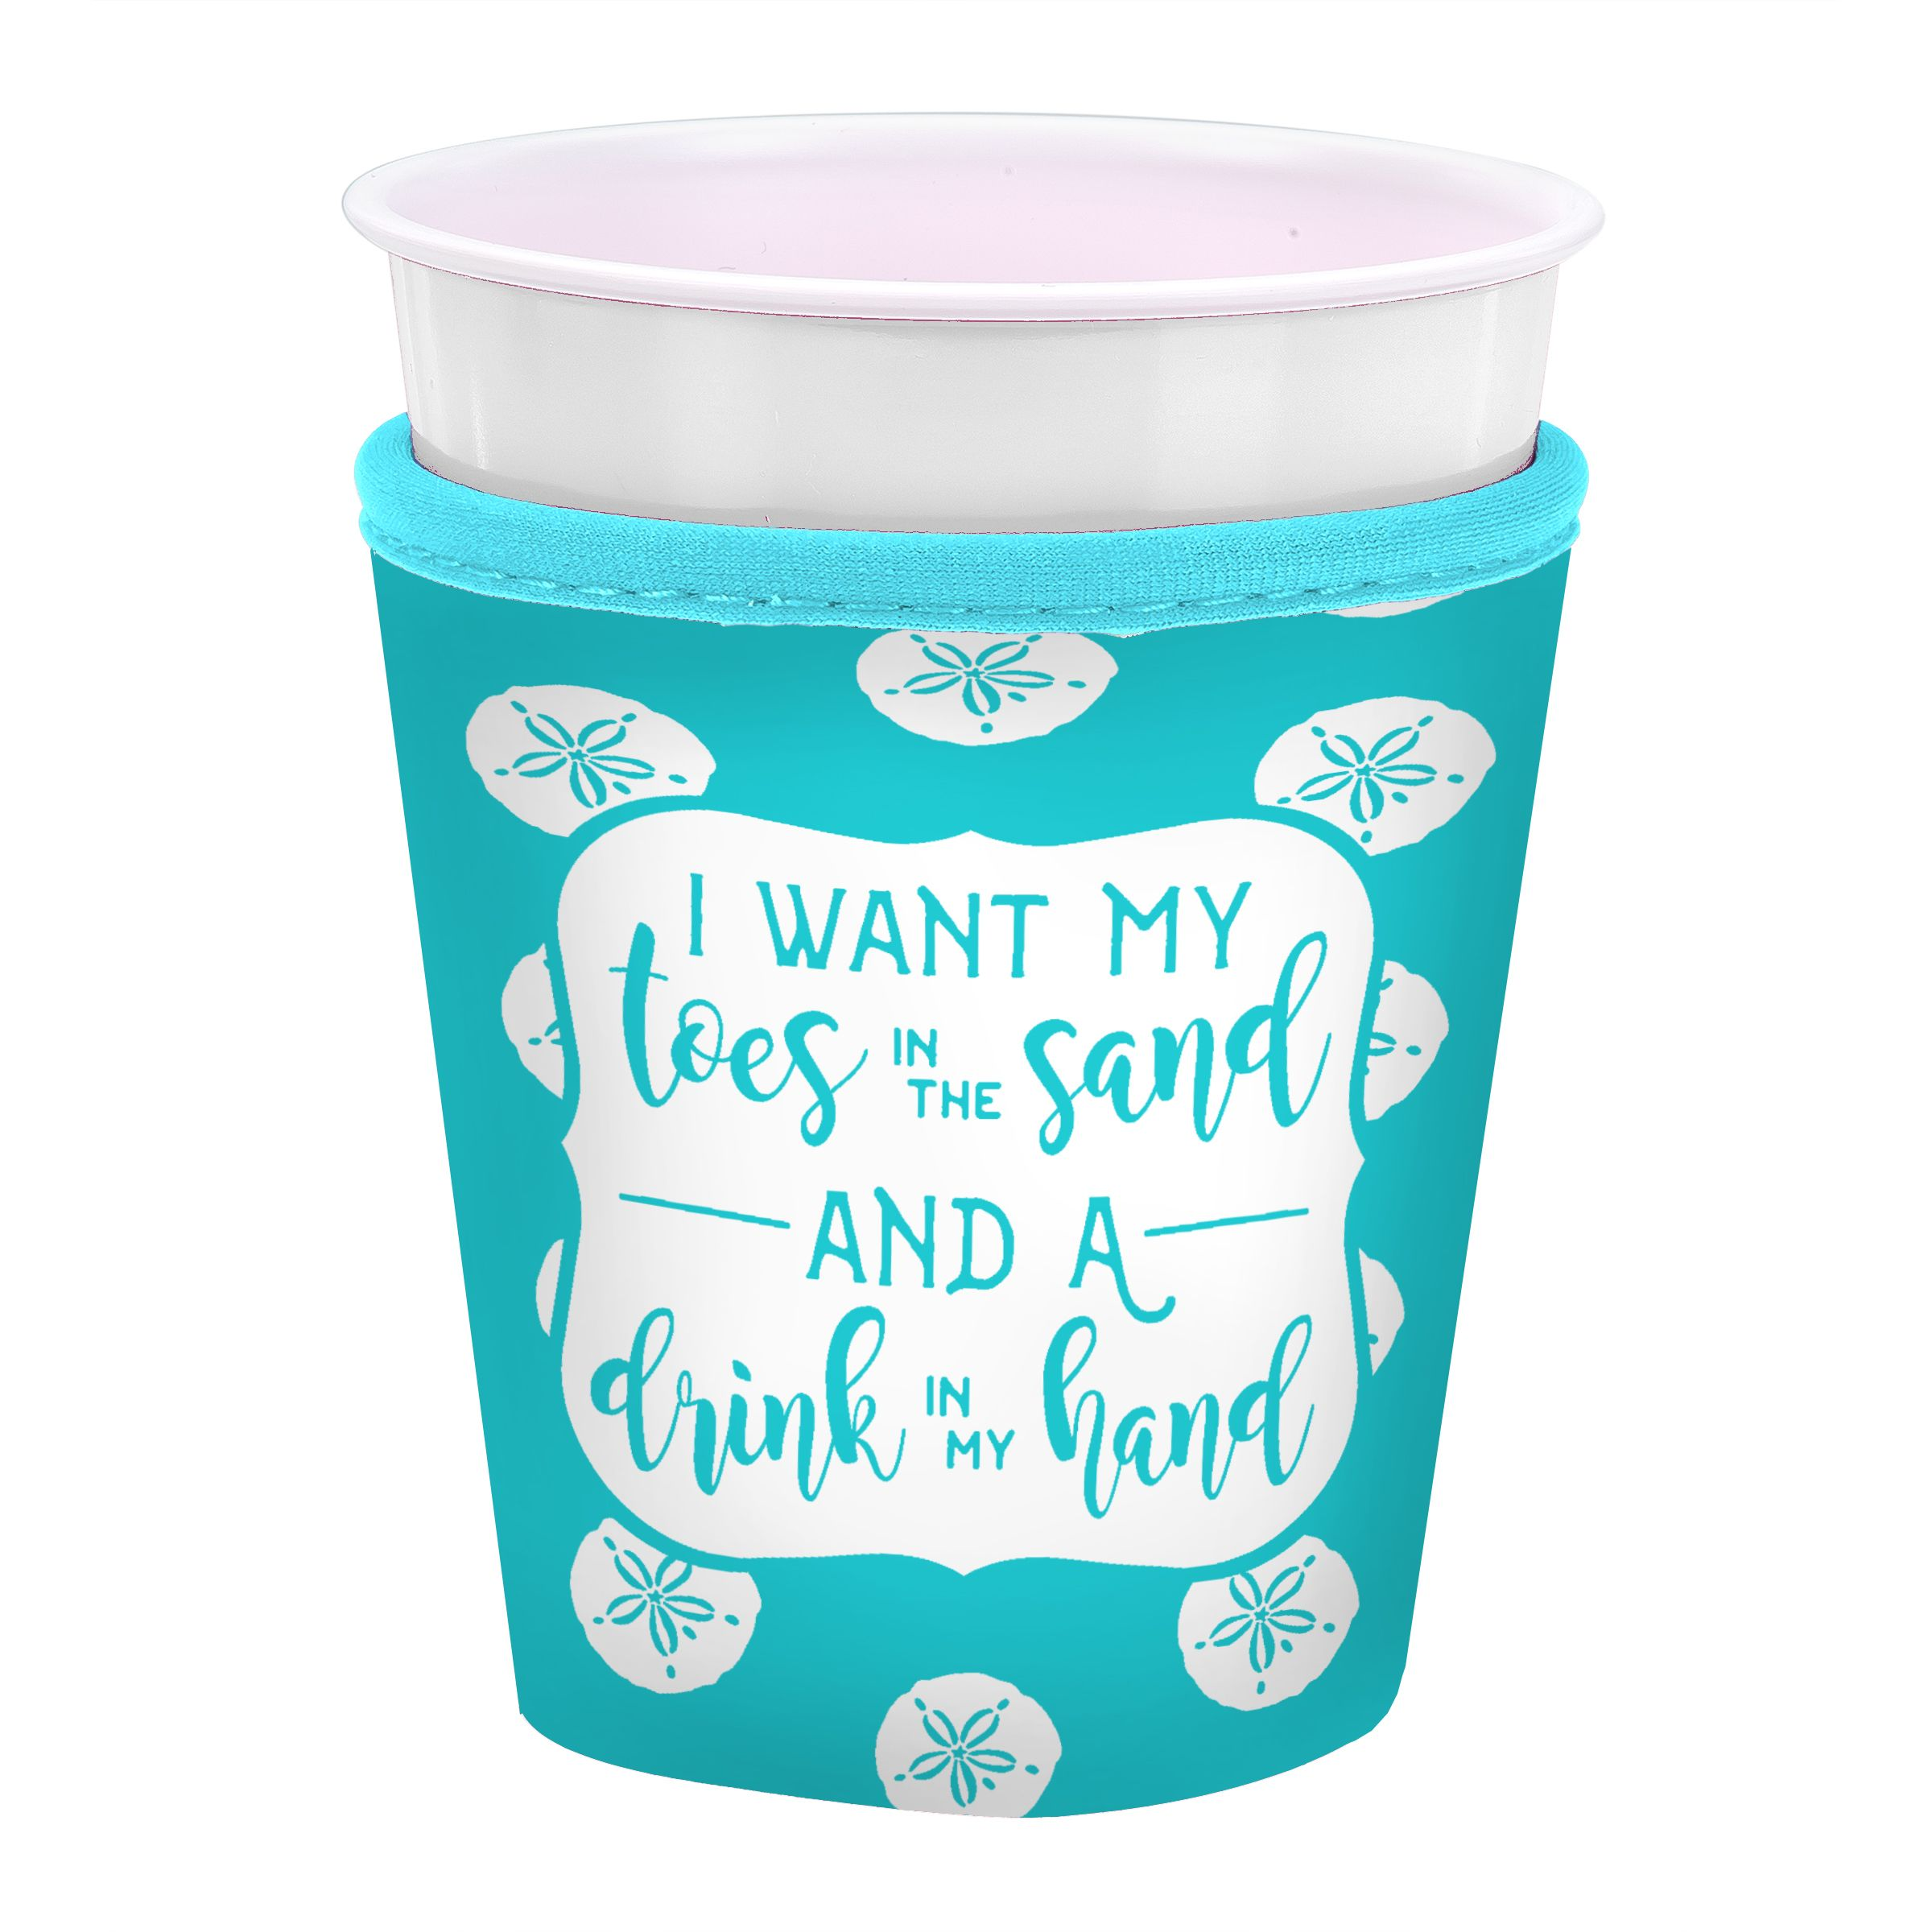 Insulated Cup Coozie I Want My Toes In The Sand And A Drink Hand Occasionally Made Beach Accessories Pool Great Gift Ideas For Her